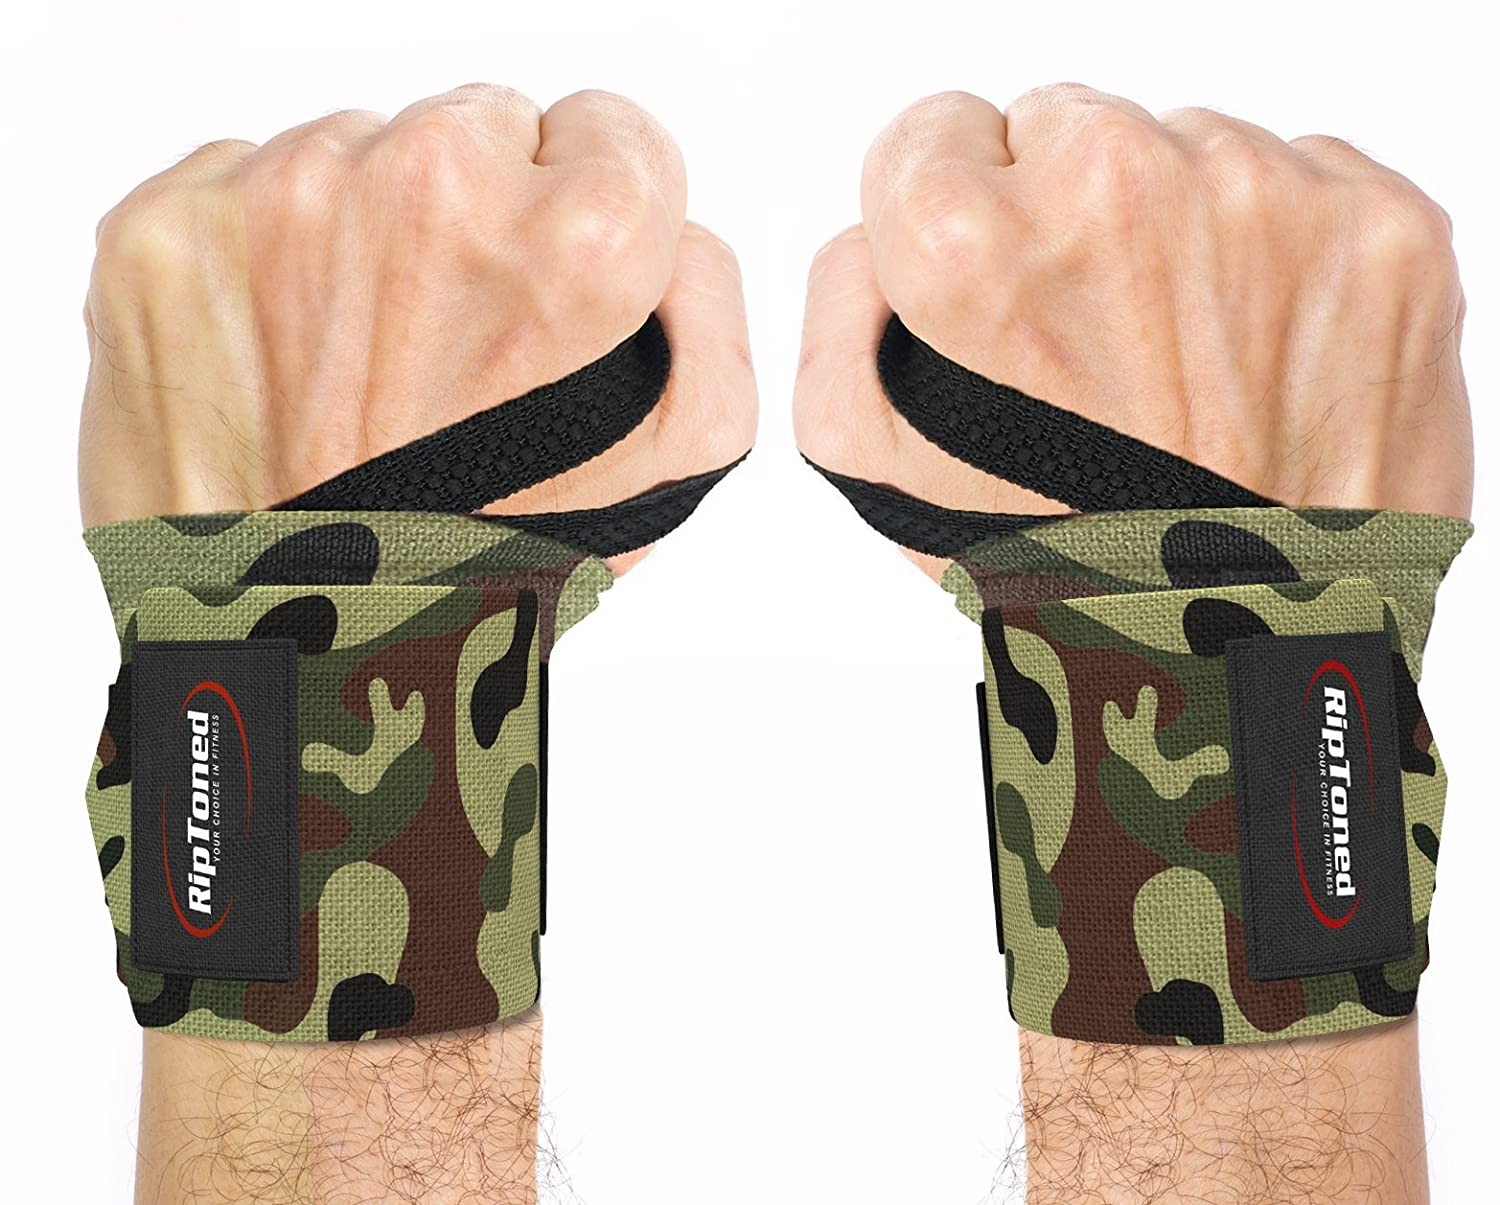 Weight Lifting Powerlifting Strength Training Crossfit Lifetime Warranty Wrist Support Braces for Men /& Women Bonus Ebook 18 Professional Grade With Thumb Loops Wrist Wraps by Rip Toned